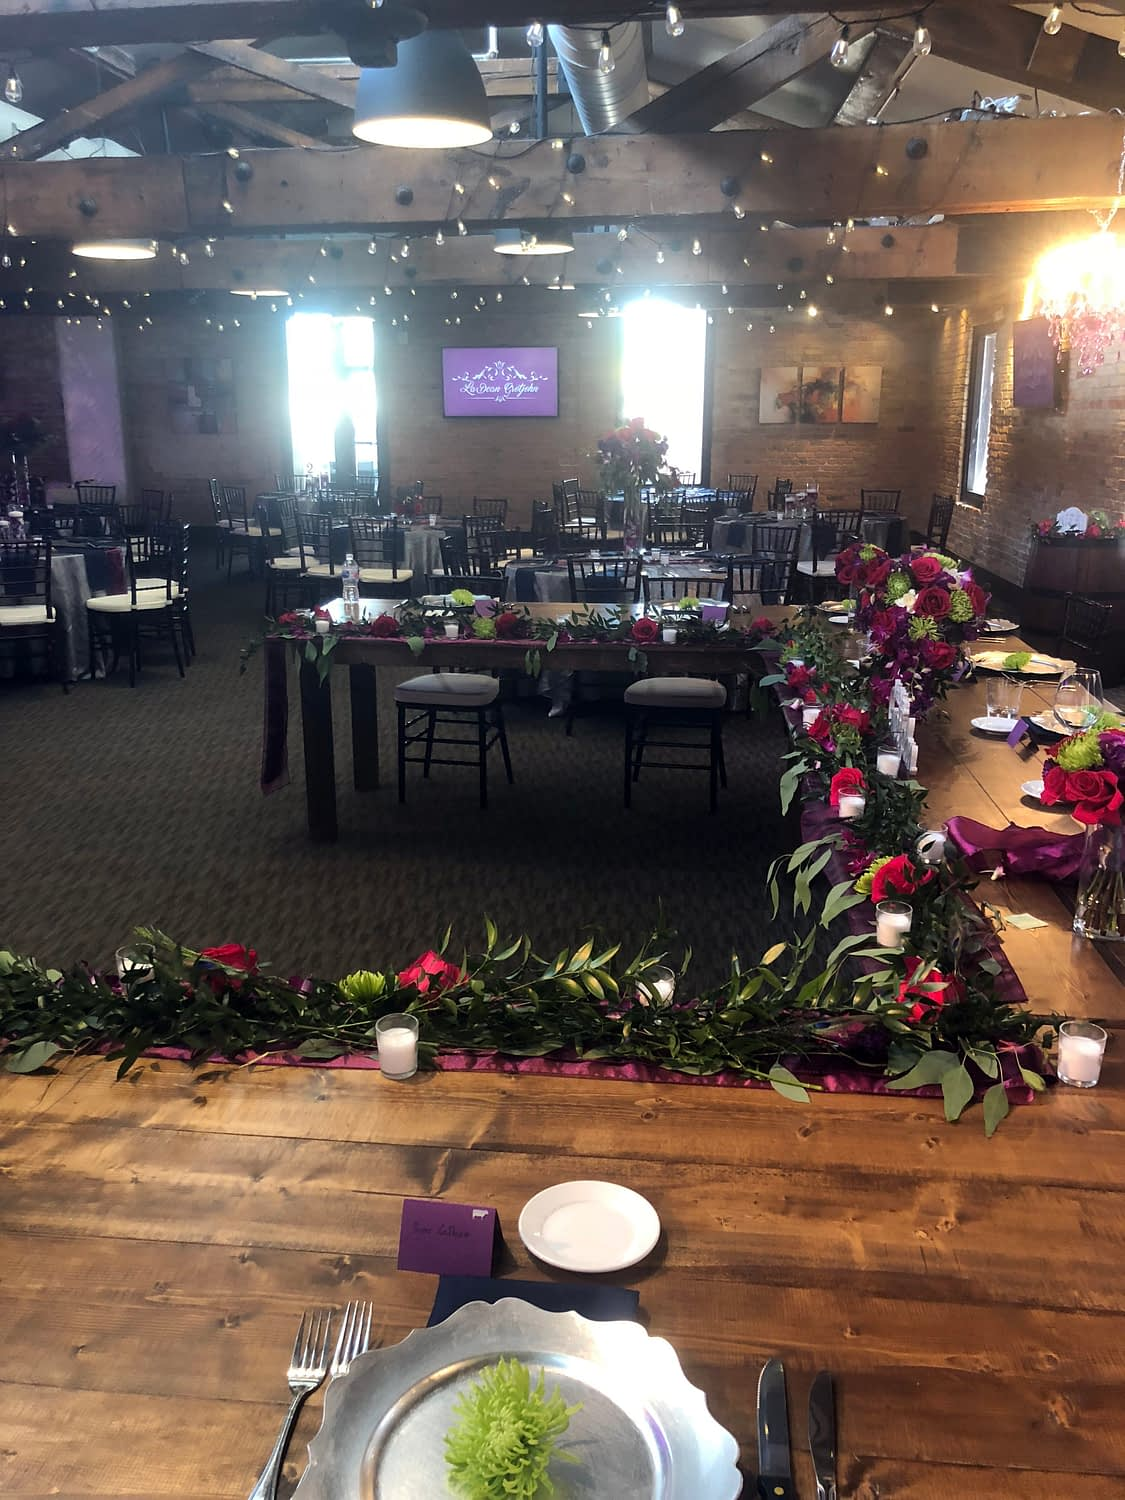 minneapolis event center reception decoration greenery flowers warm